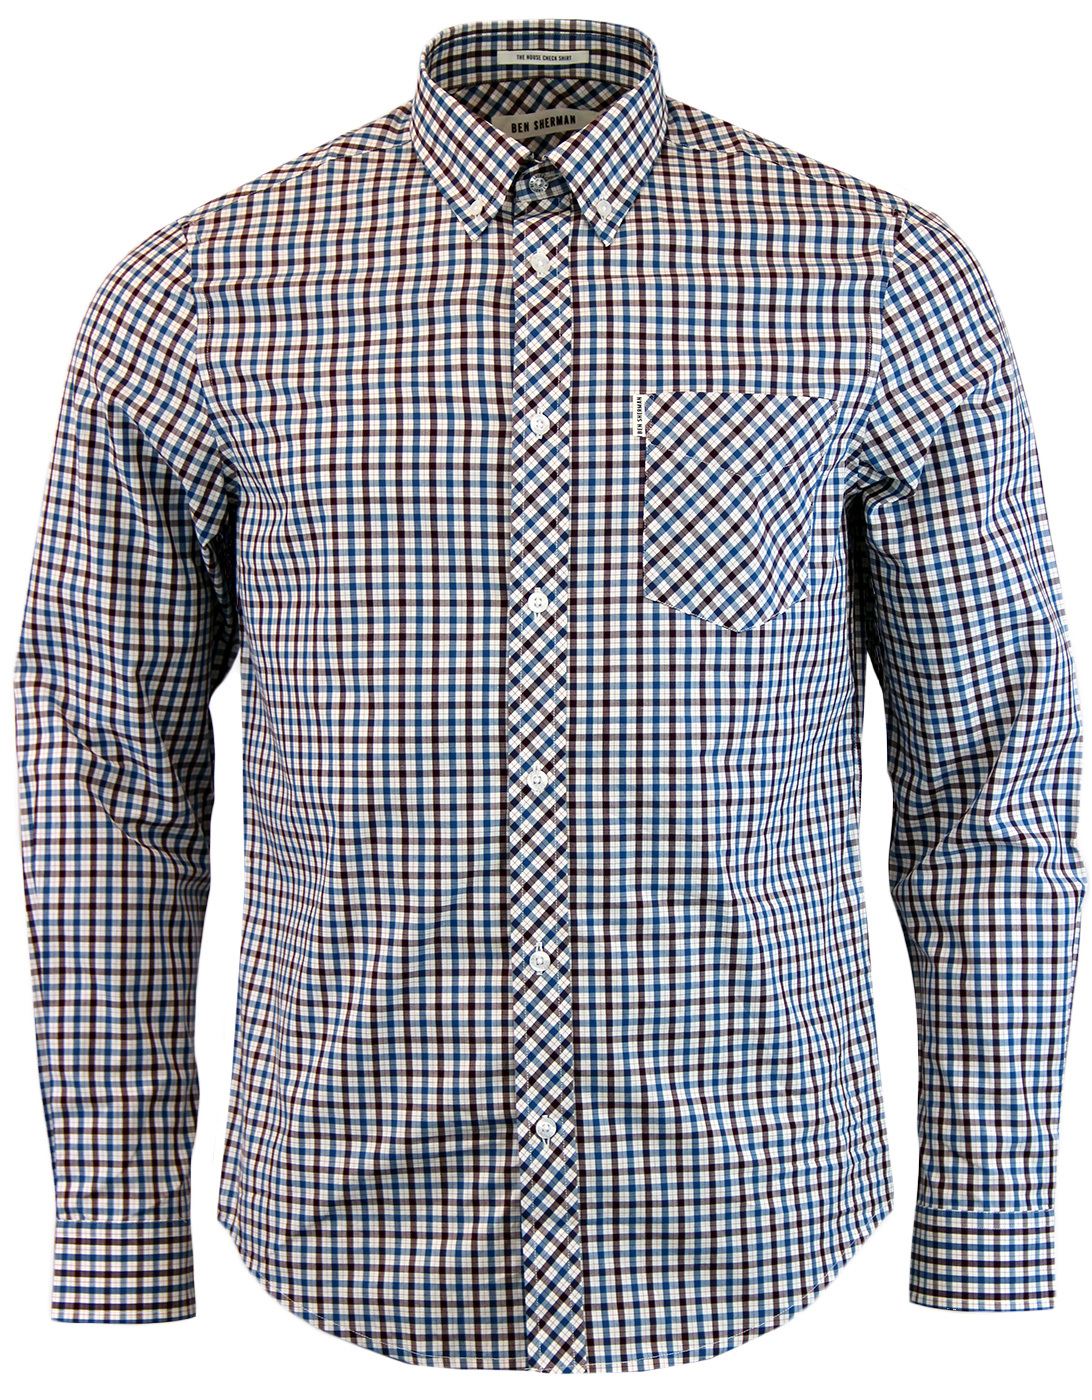 8555642f39 BEN SHERMAN 60s Mod Heritage House Check Shirt in Blue